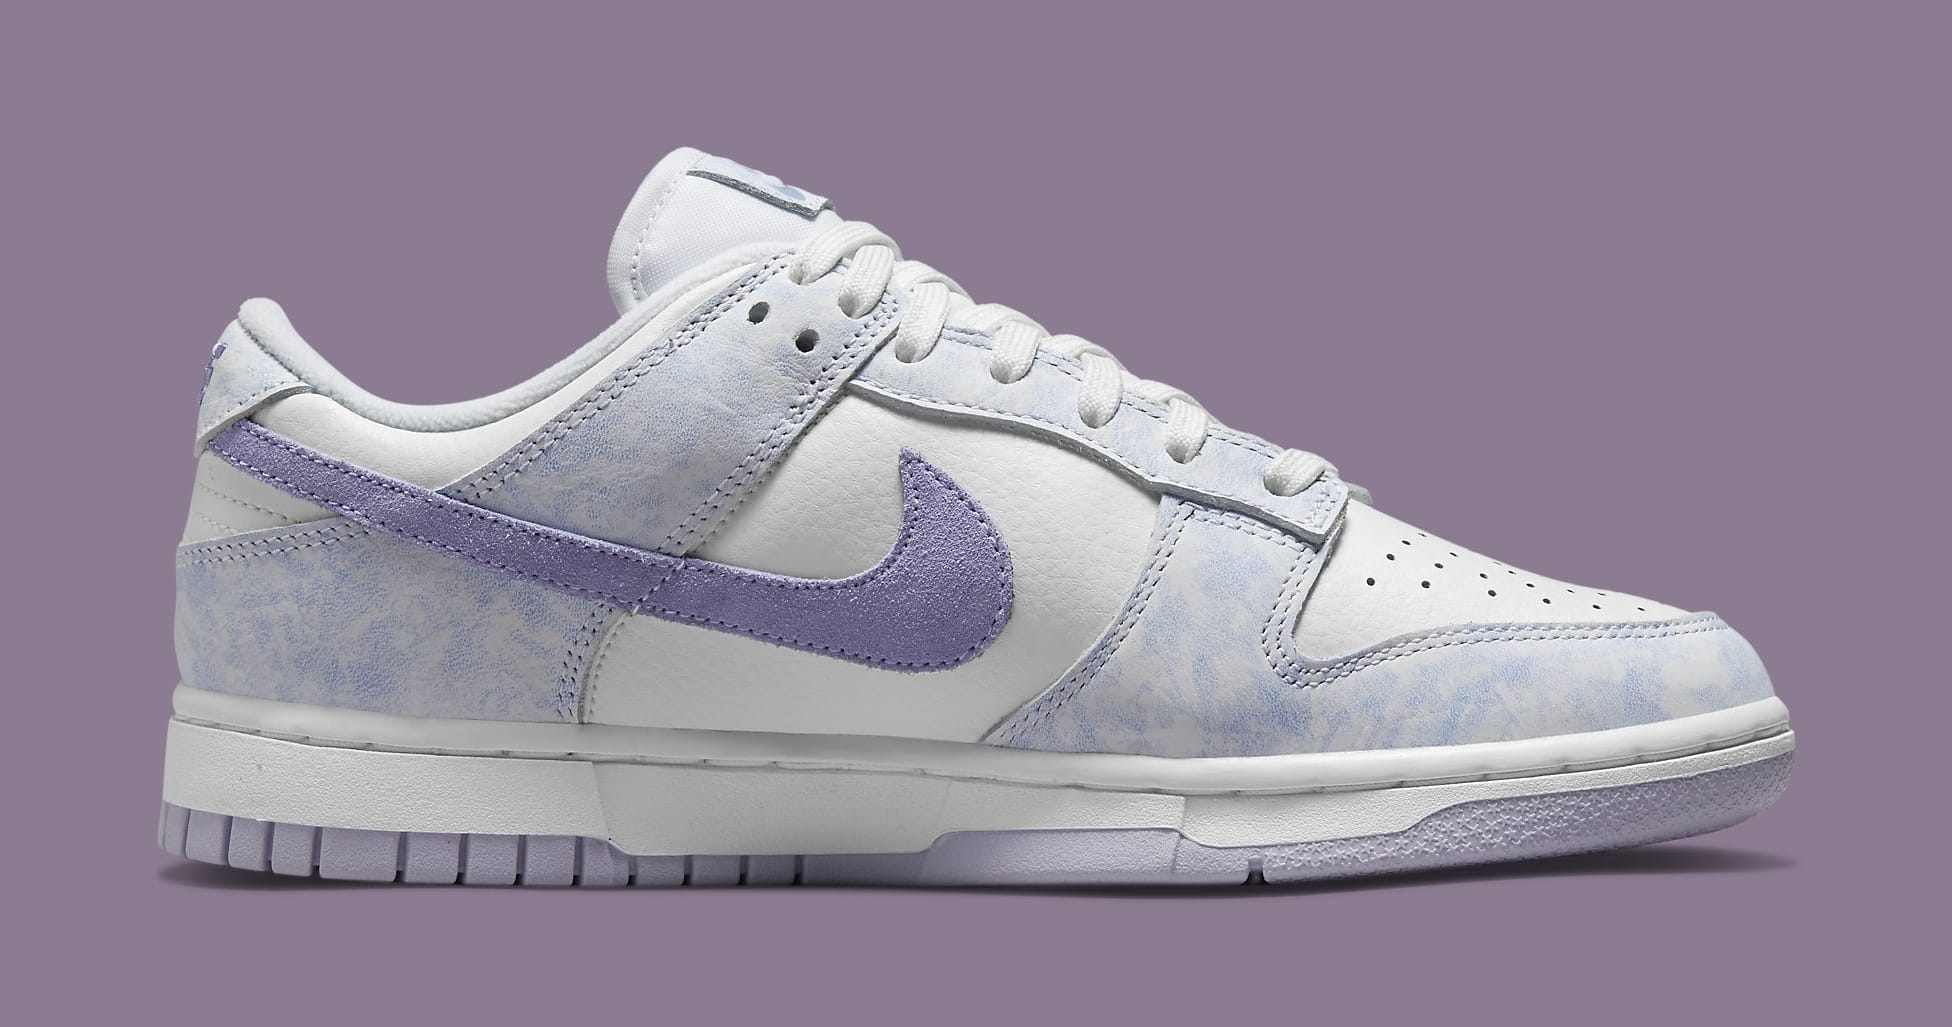 Nike Dunk Low Women's 'Purple Pulse' DM9467-500 Medial